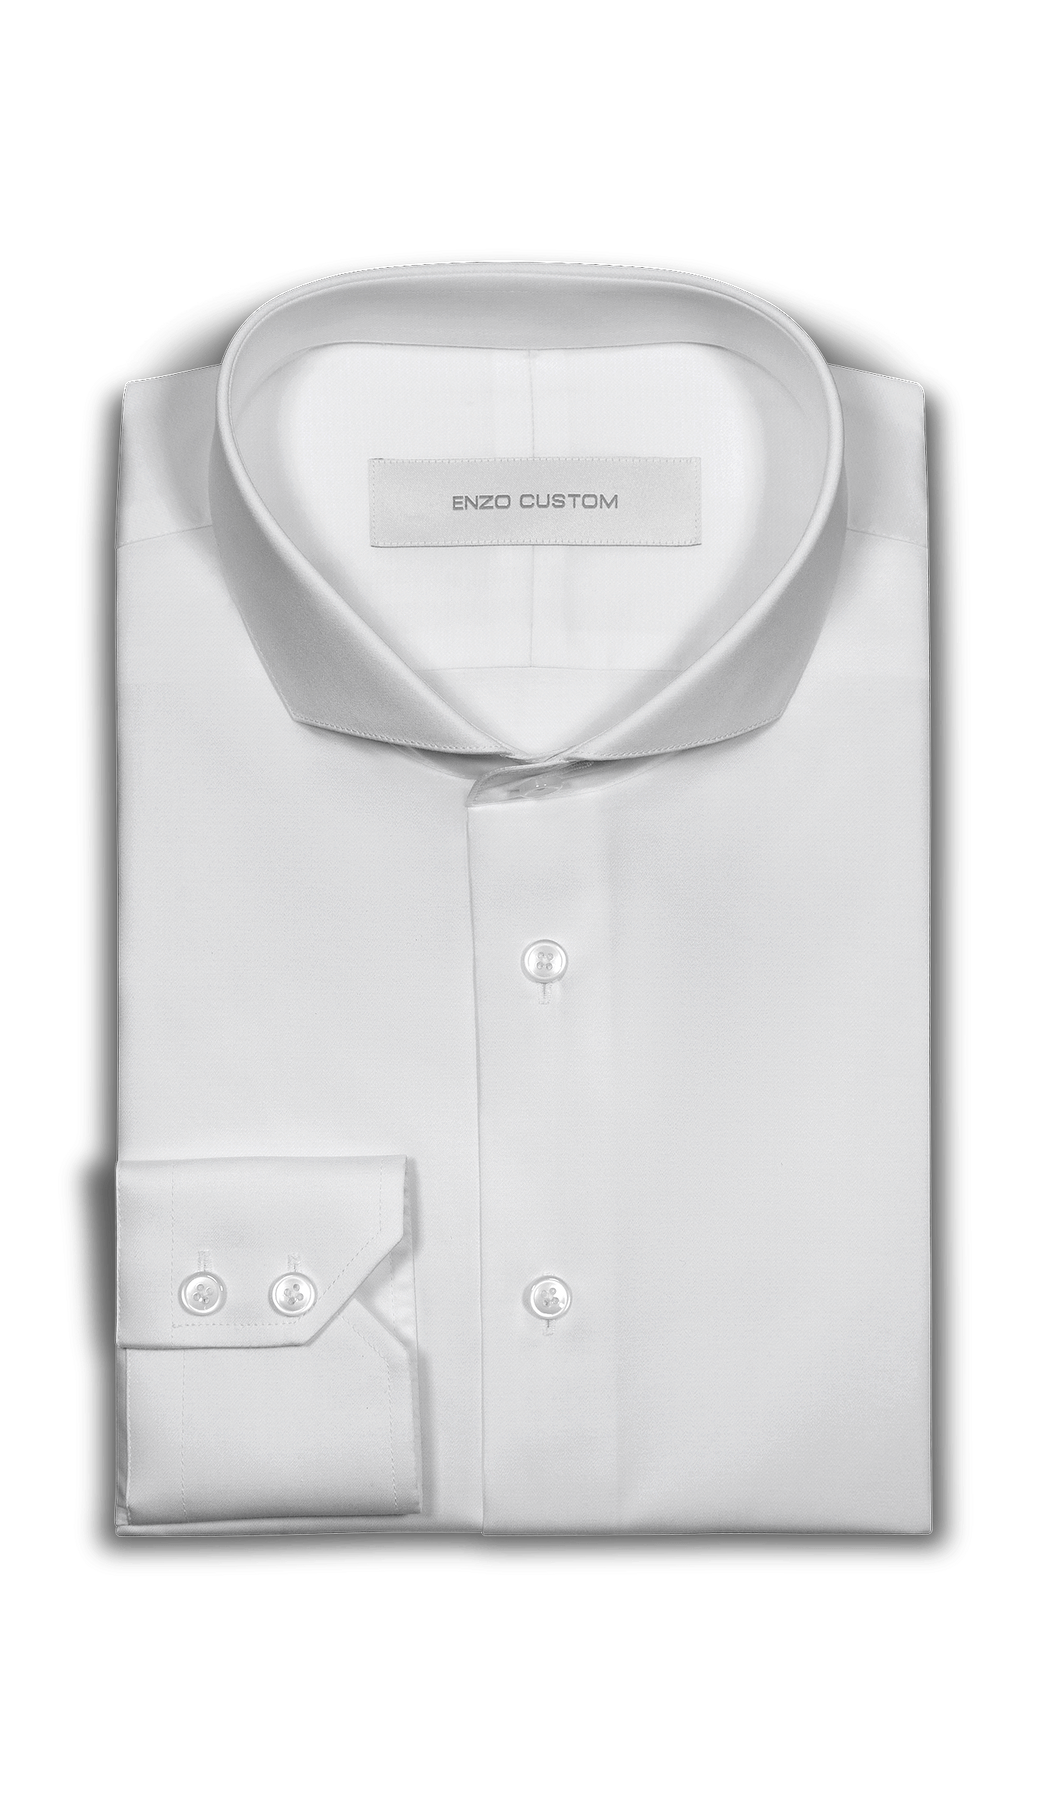 White Dress Shirt - Enzo Custom